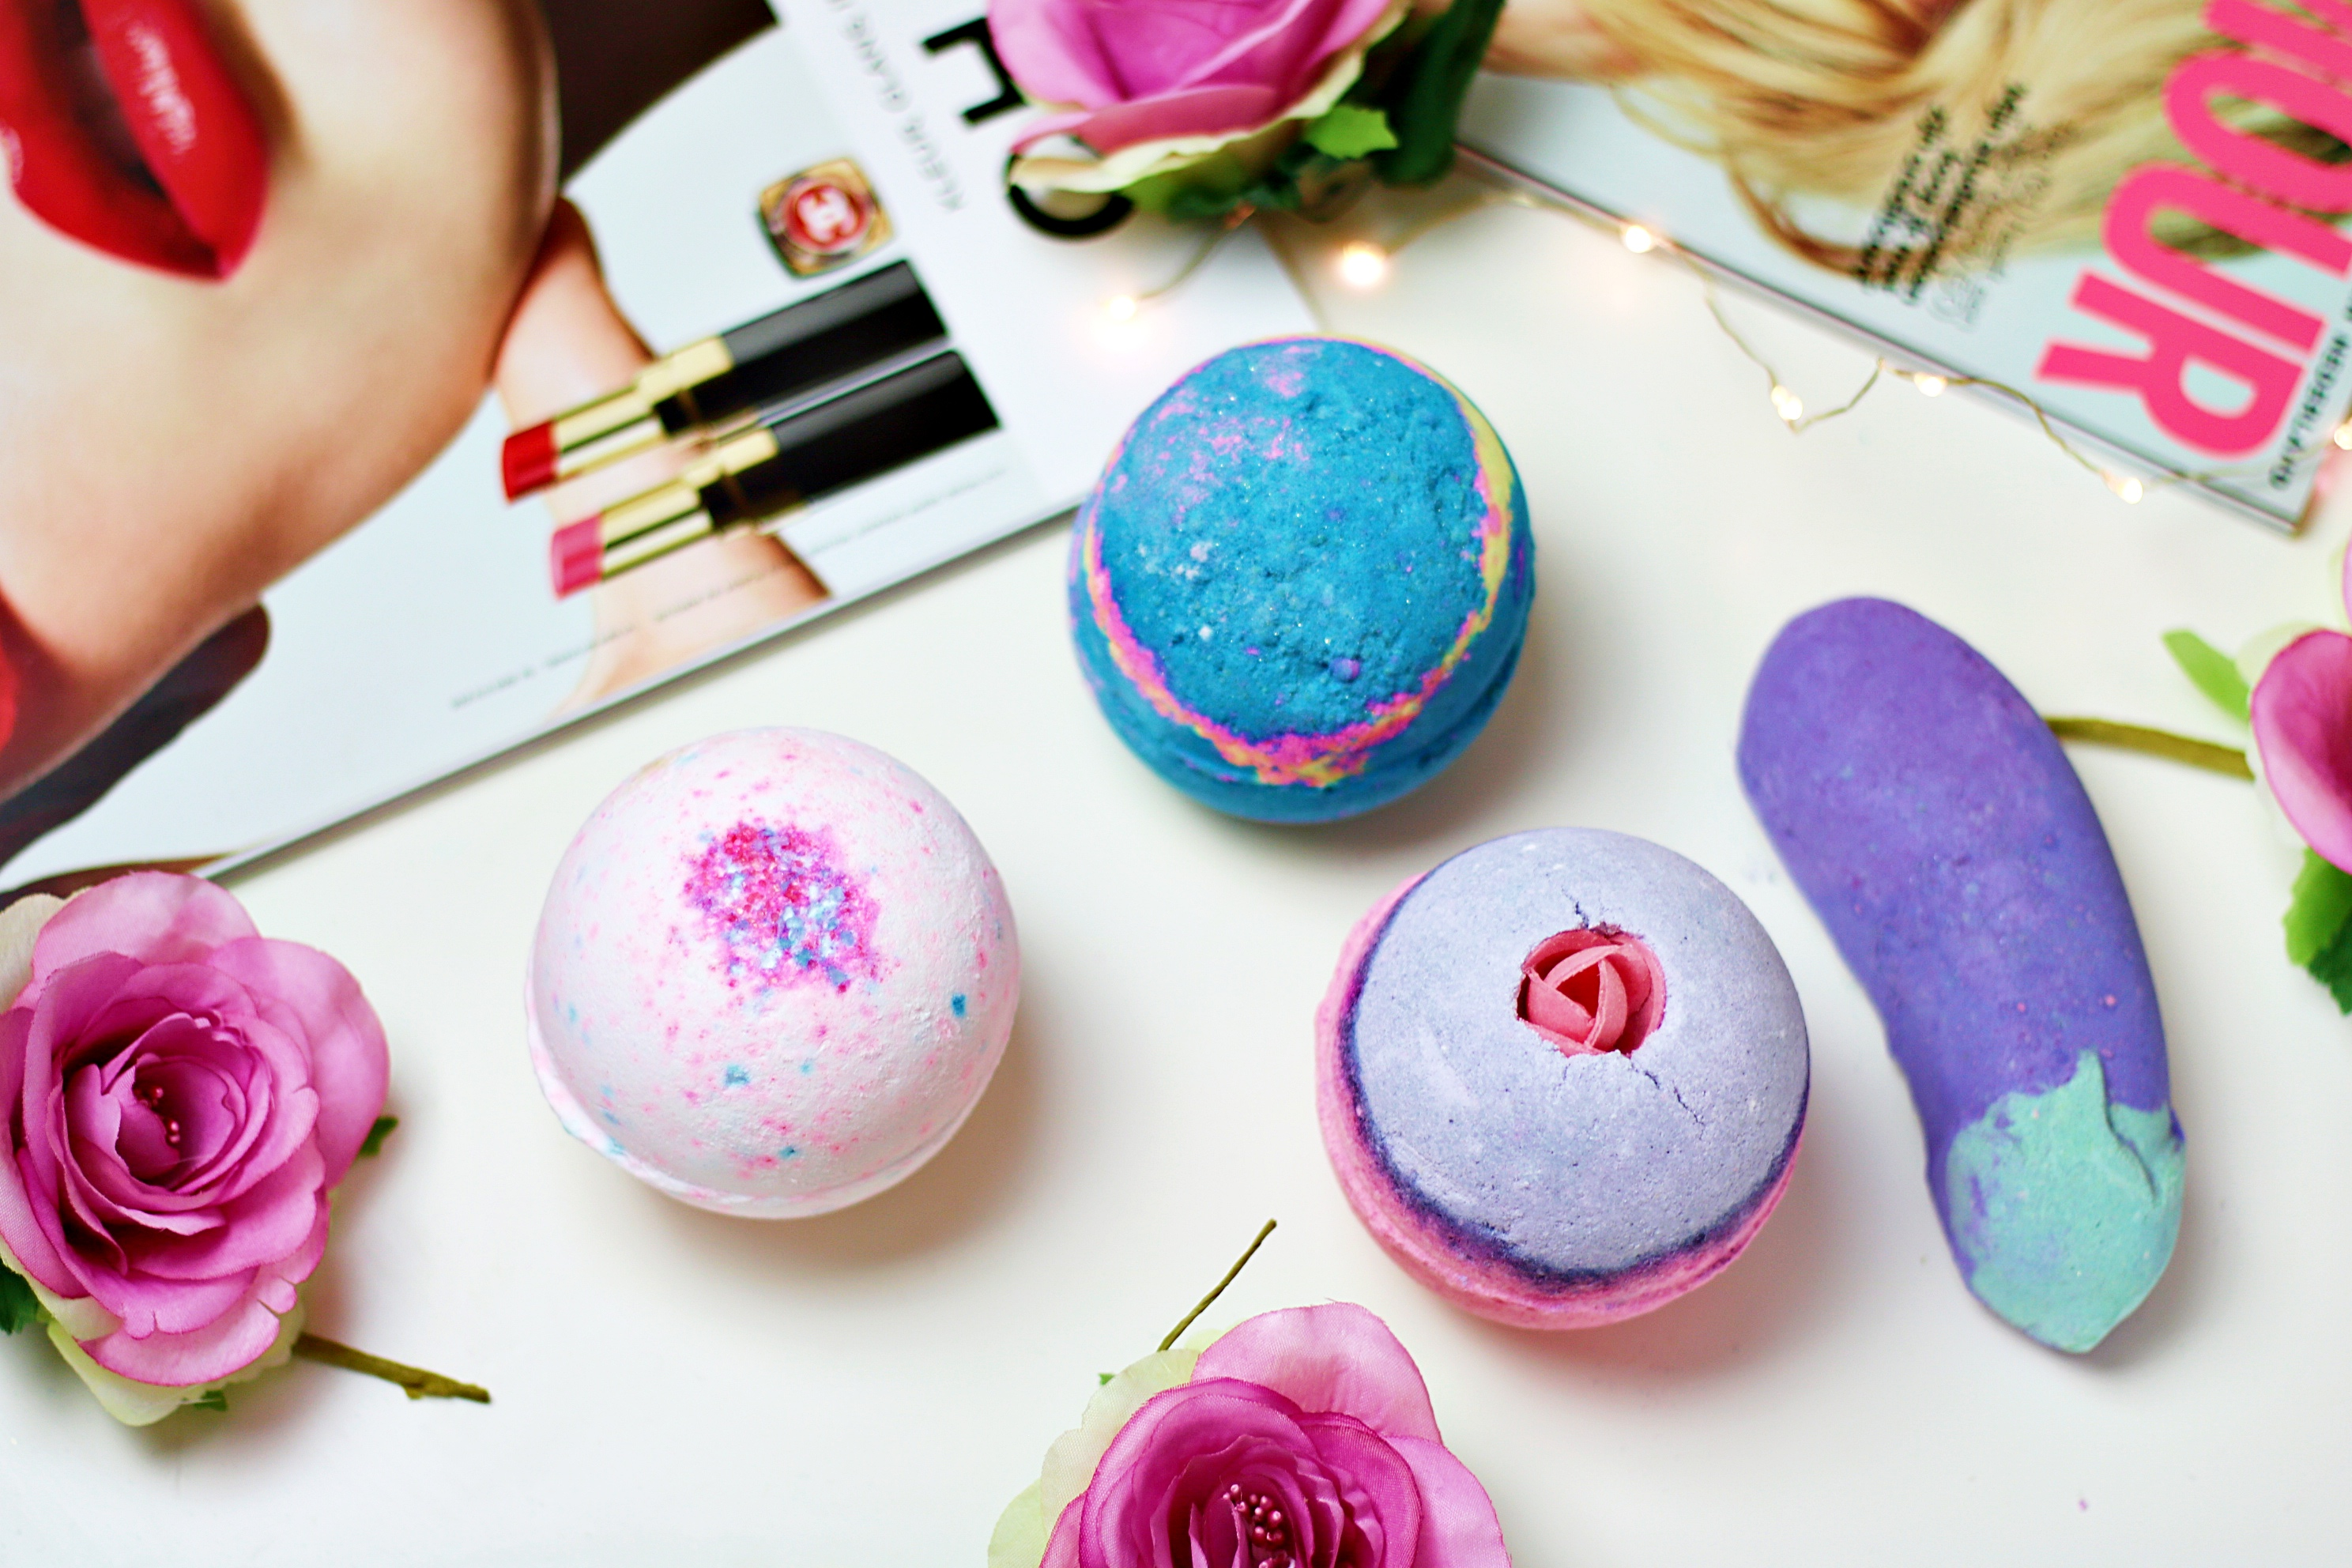 My Top 5 Lush Bath Bombs